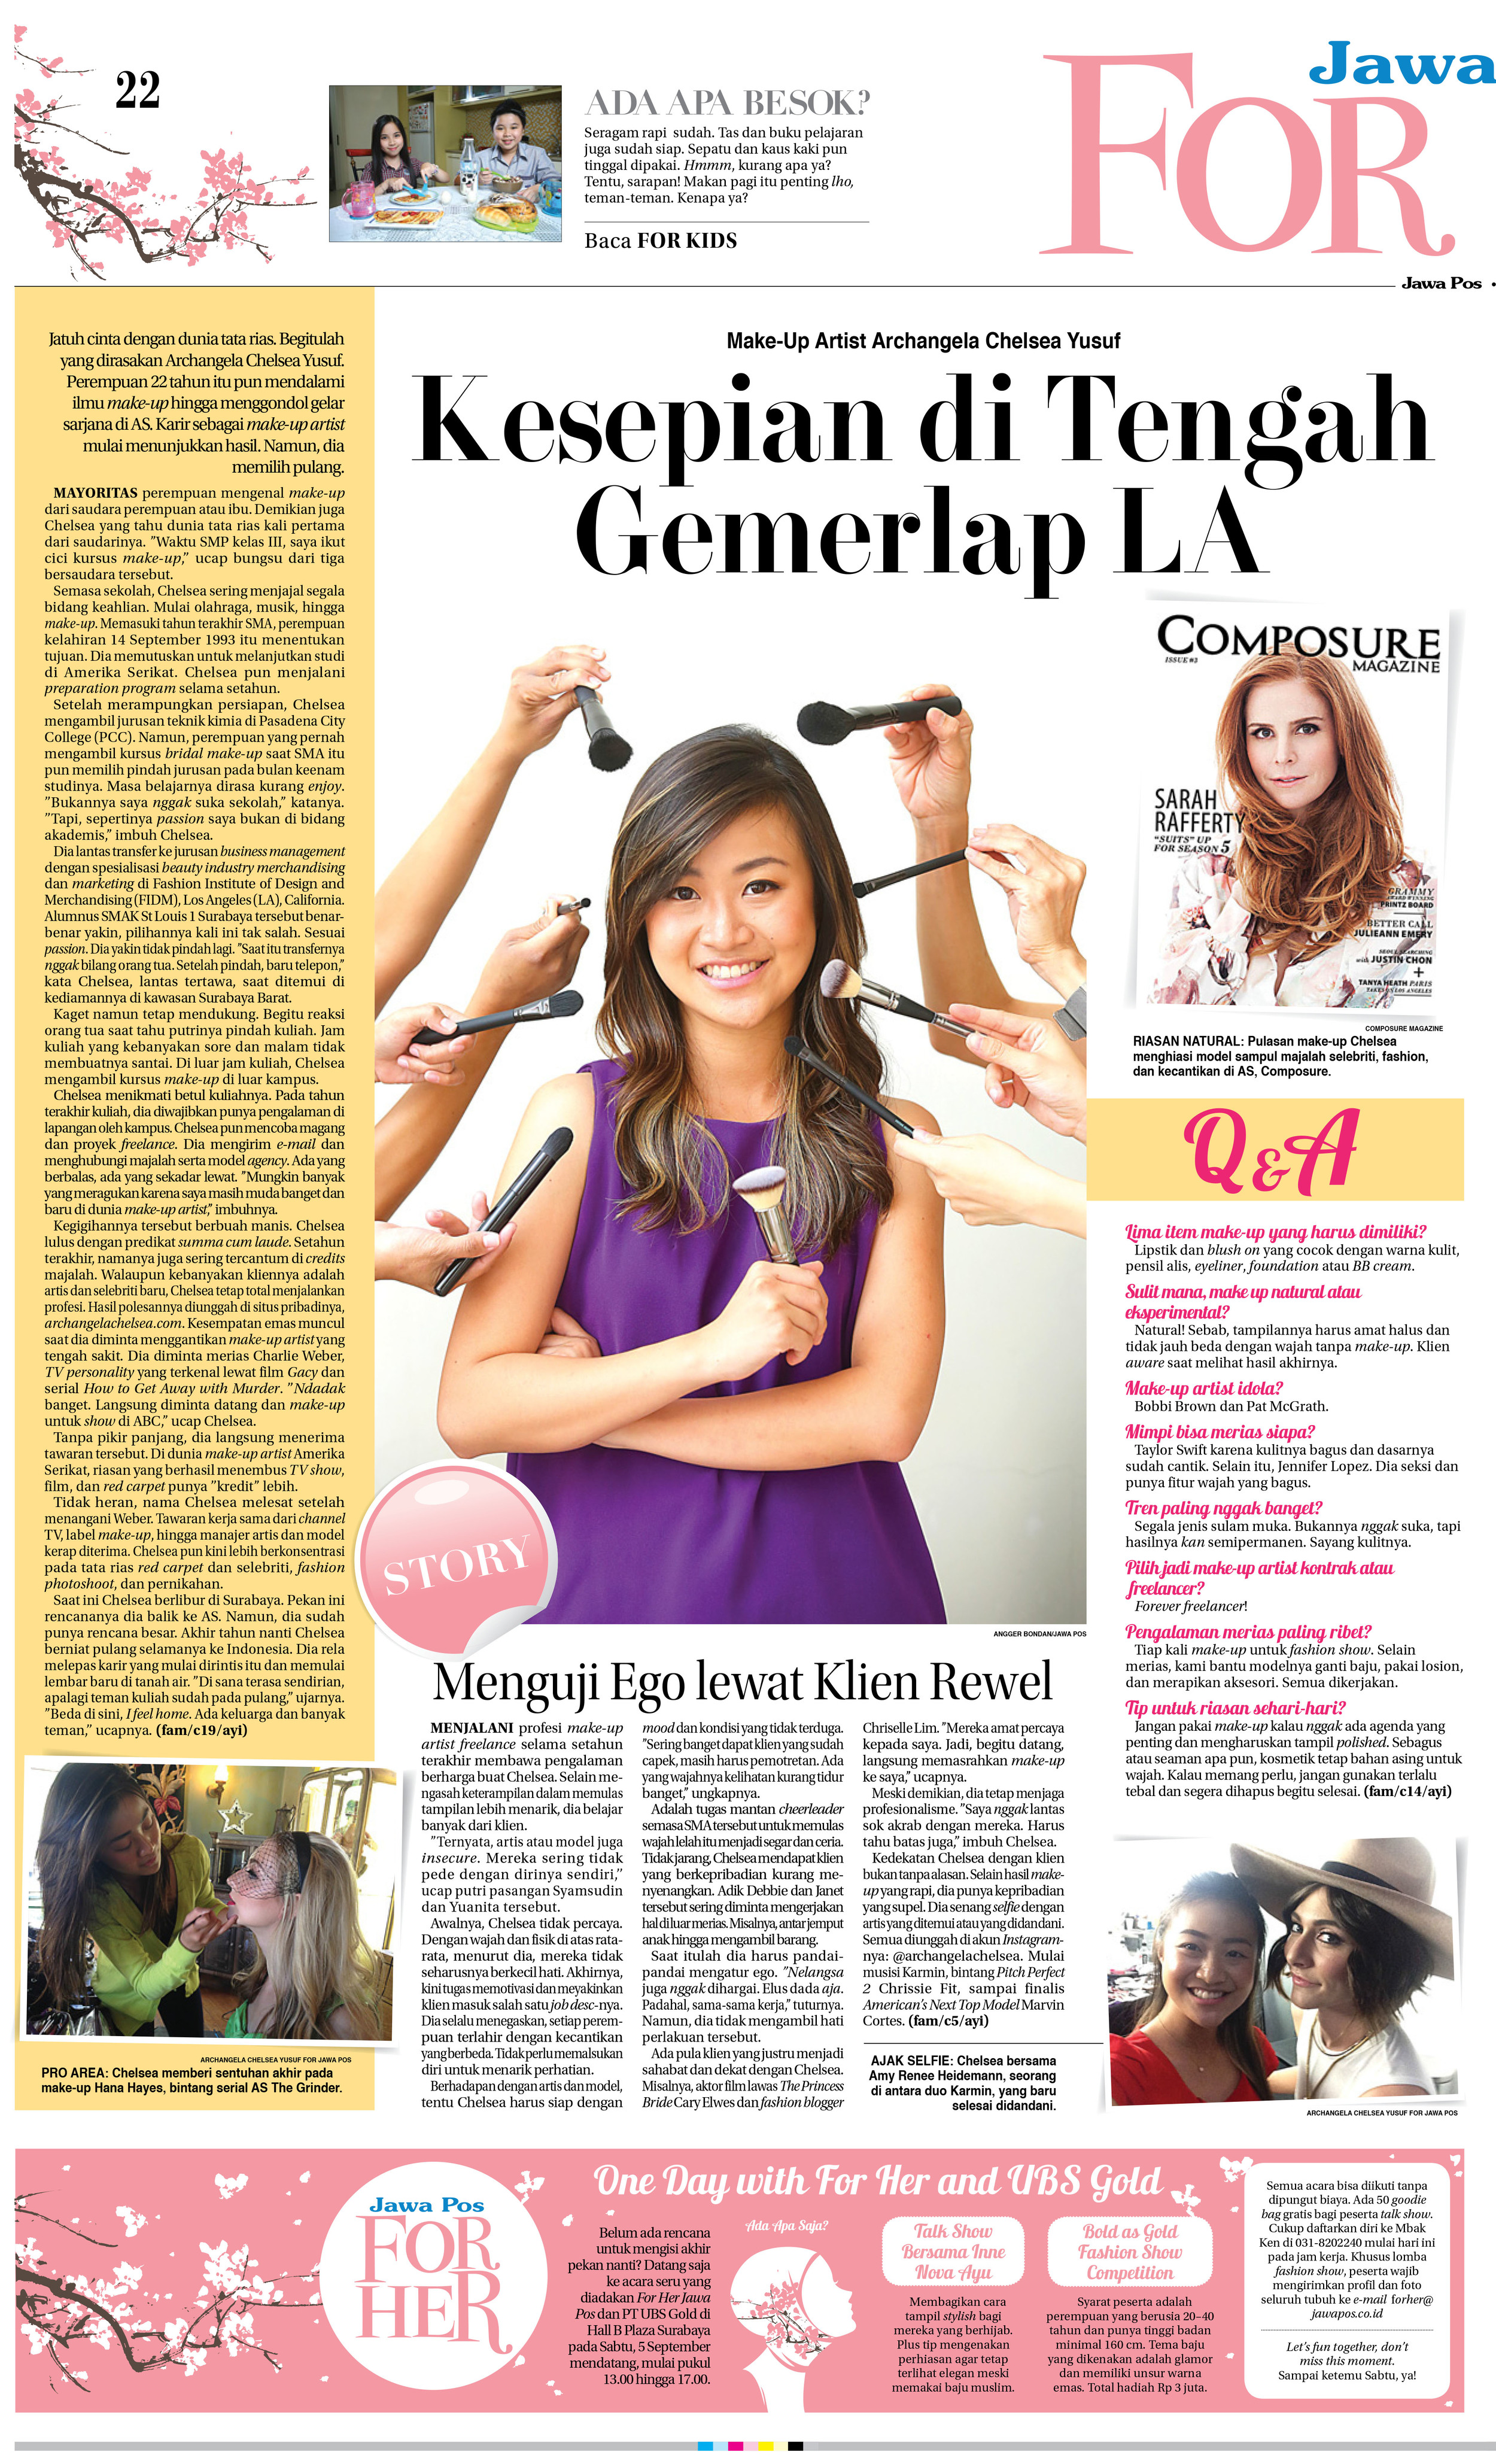 FOR HER Jawa Pos Indonesia